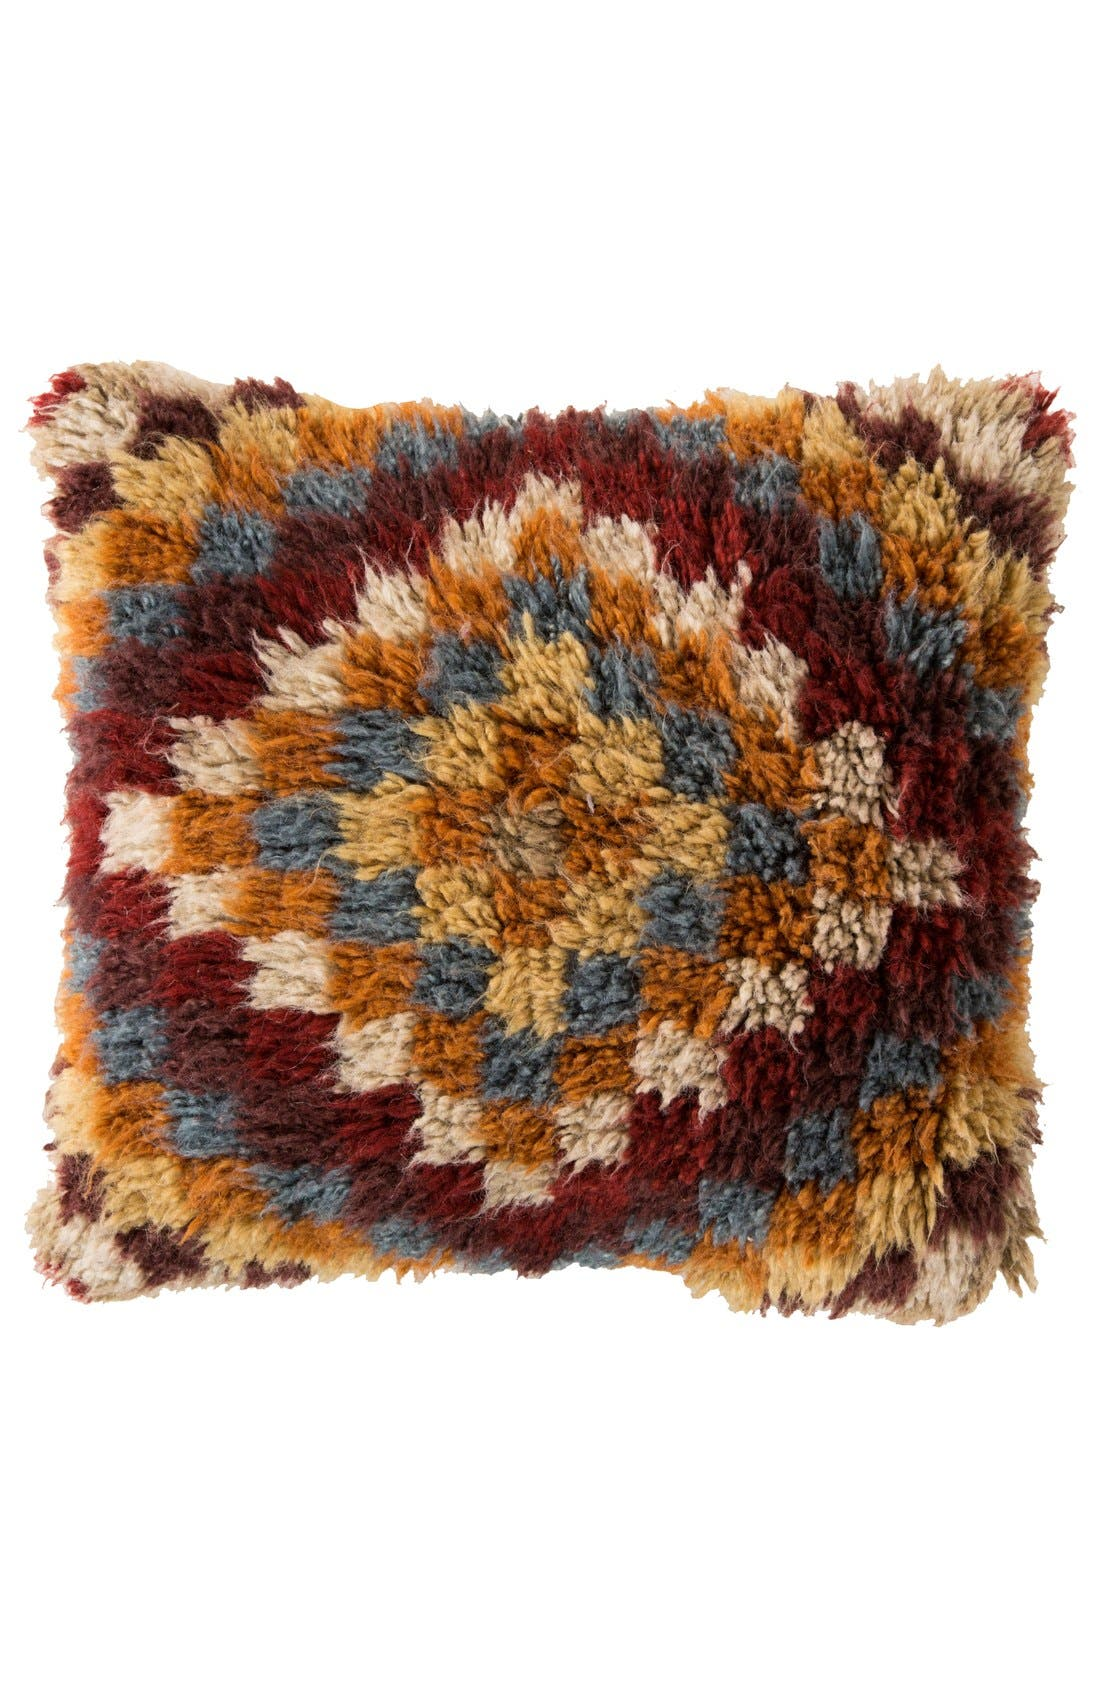 Alternate Image 1 Selected - Surya Home 'Mammoth' Wool Accent Pillow